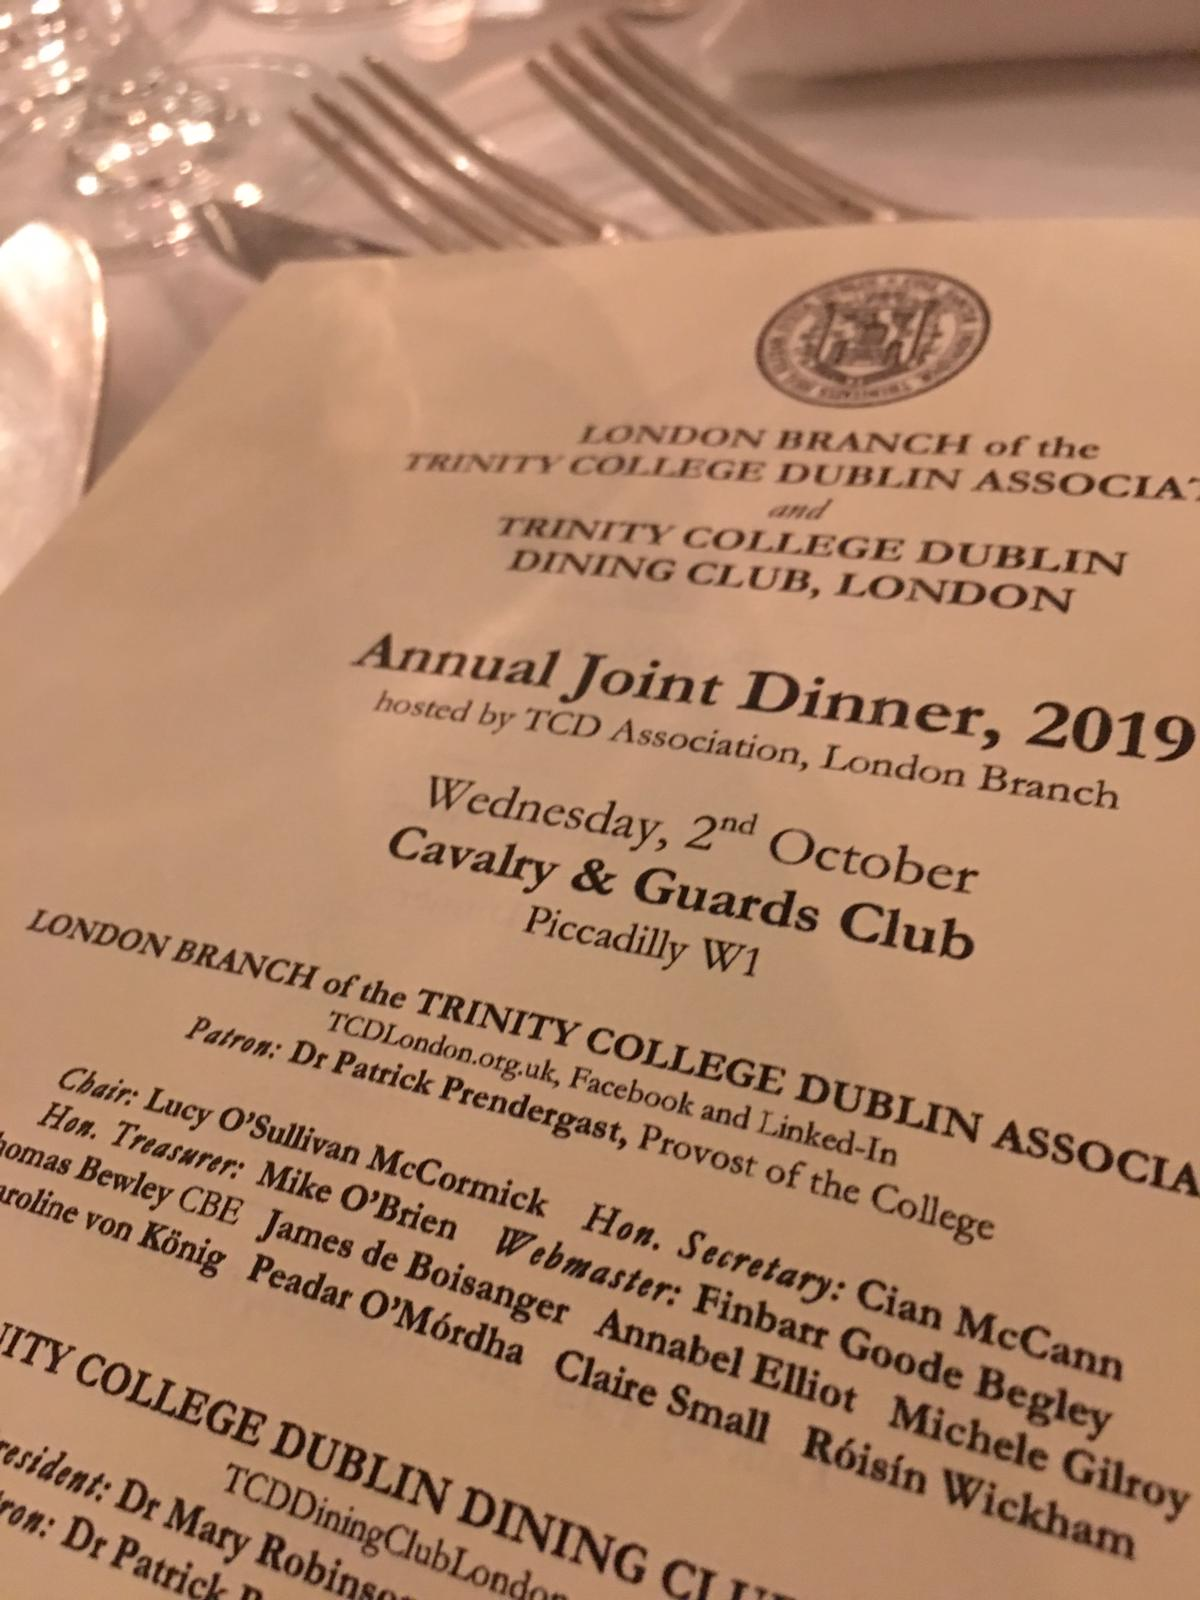 paul mcguiness former manager u2 trinity college dublin tcd association london joint dinner 2019